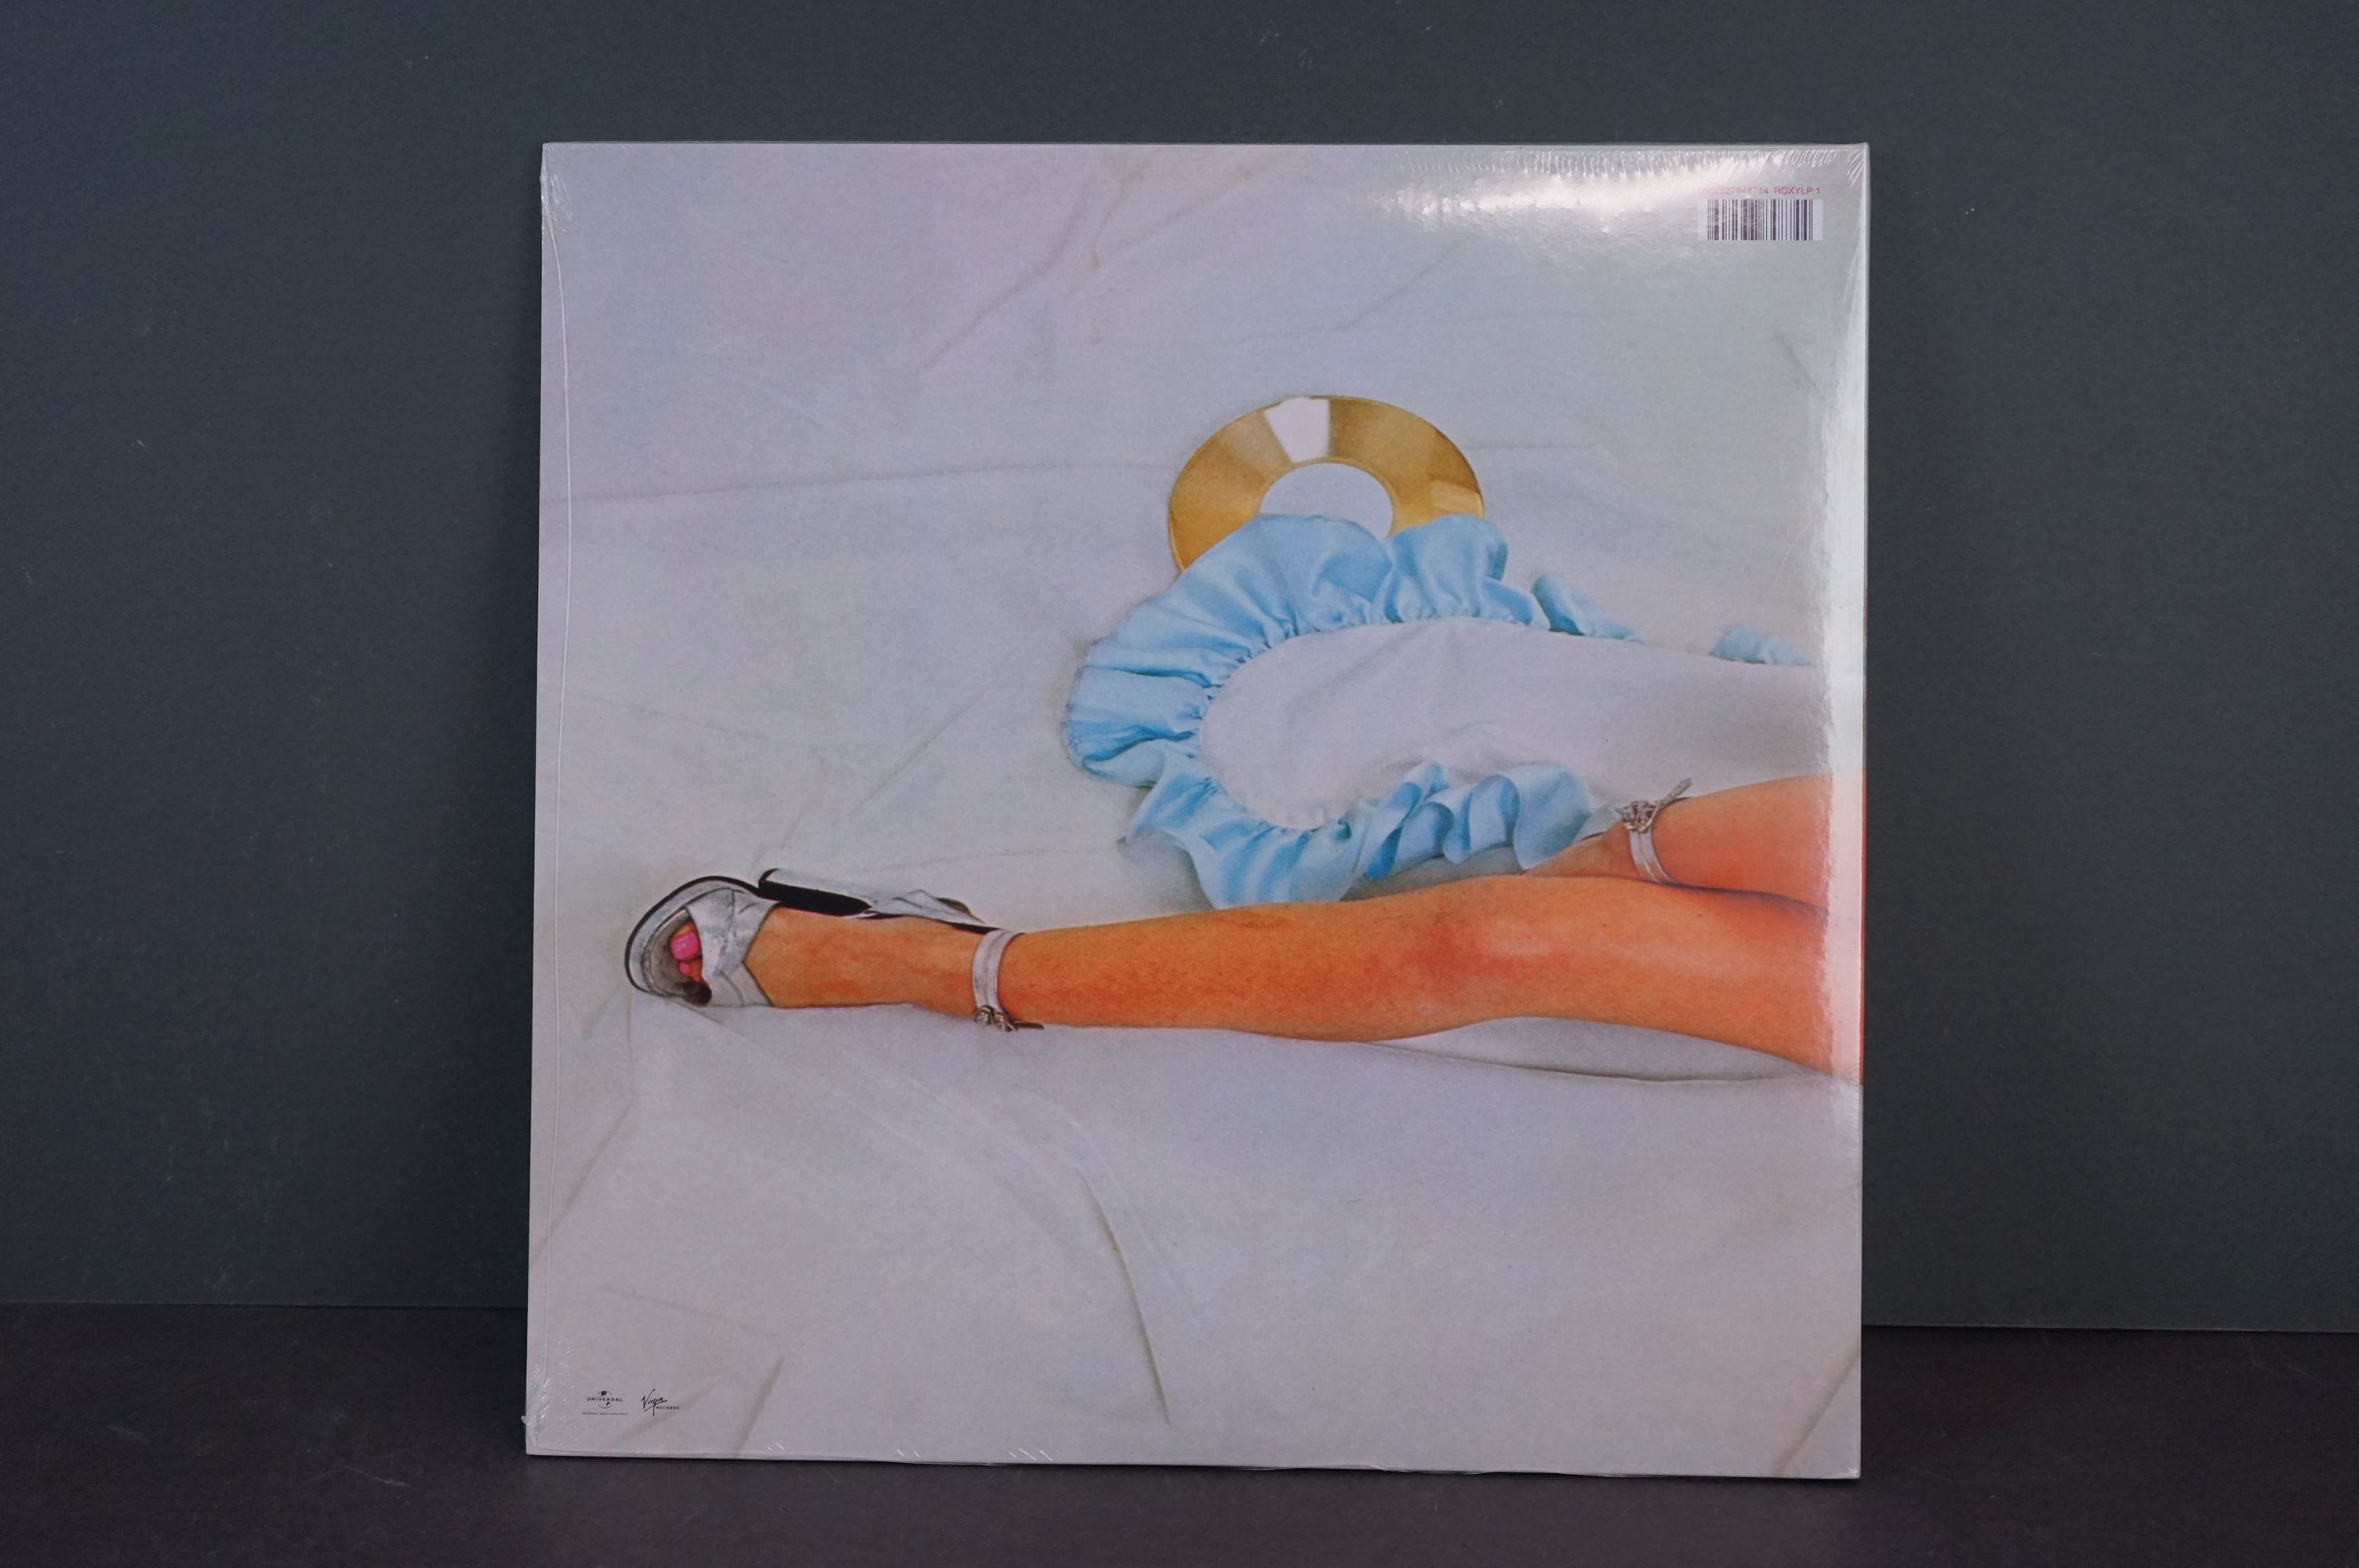 Vinyl - Roxy Music self titled LP re-issue ROXYLP1 0602537848744, sealed - Image 2 of 2